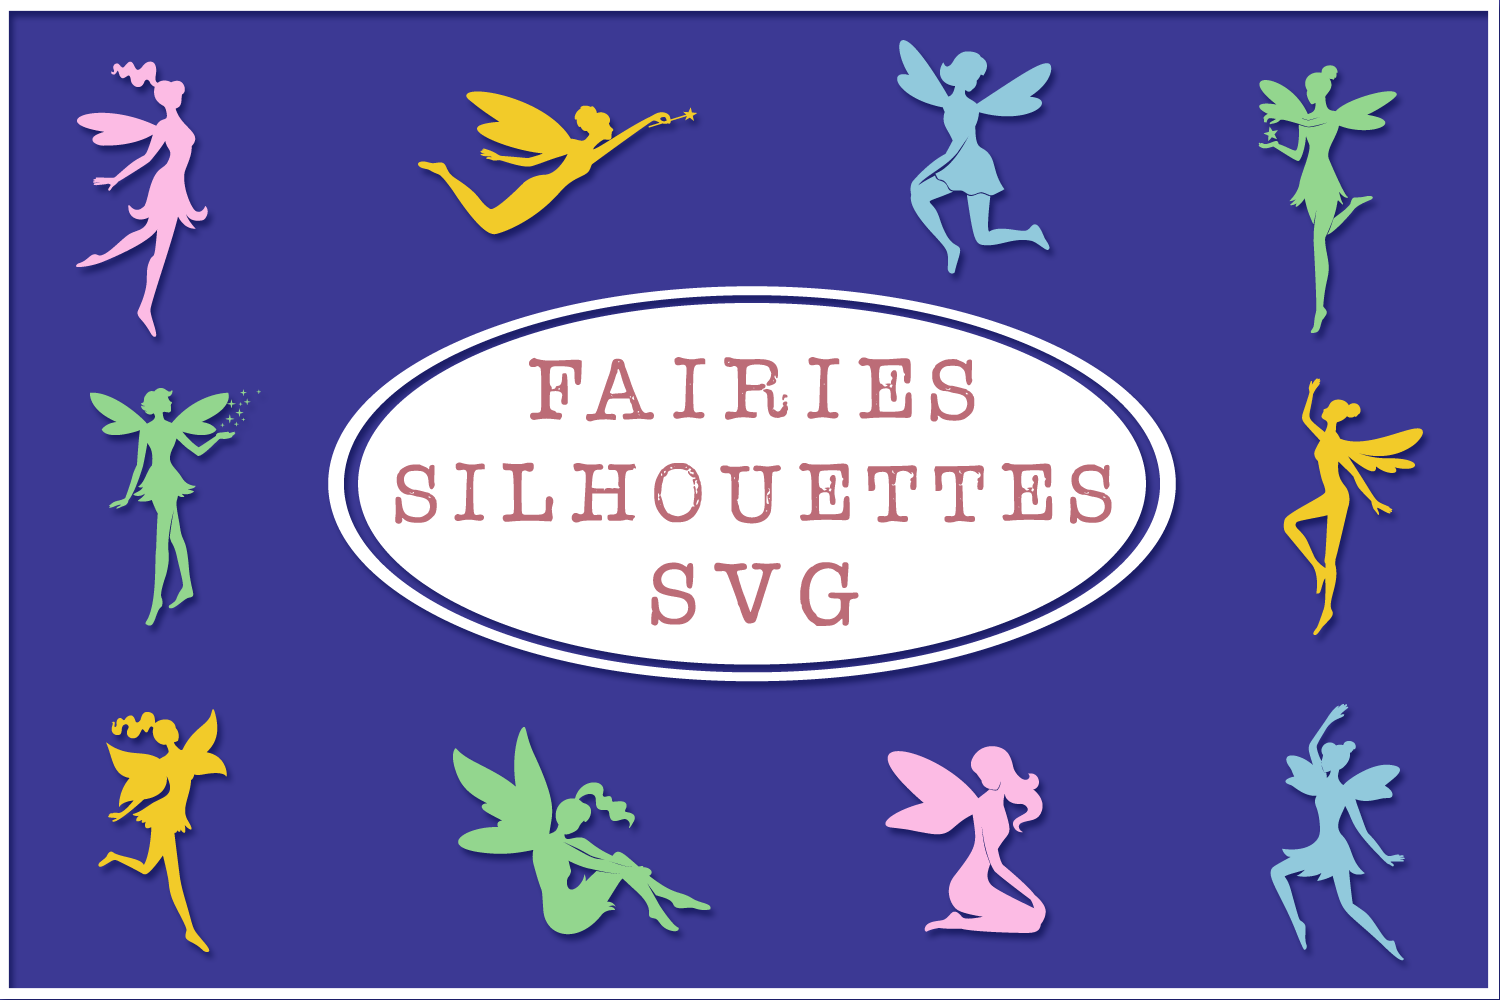 Fairy Silhouettes Svg Cut Files Pack 2 By Anastasia Feya Fonts